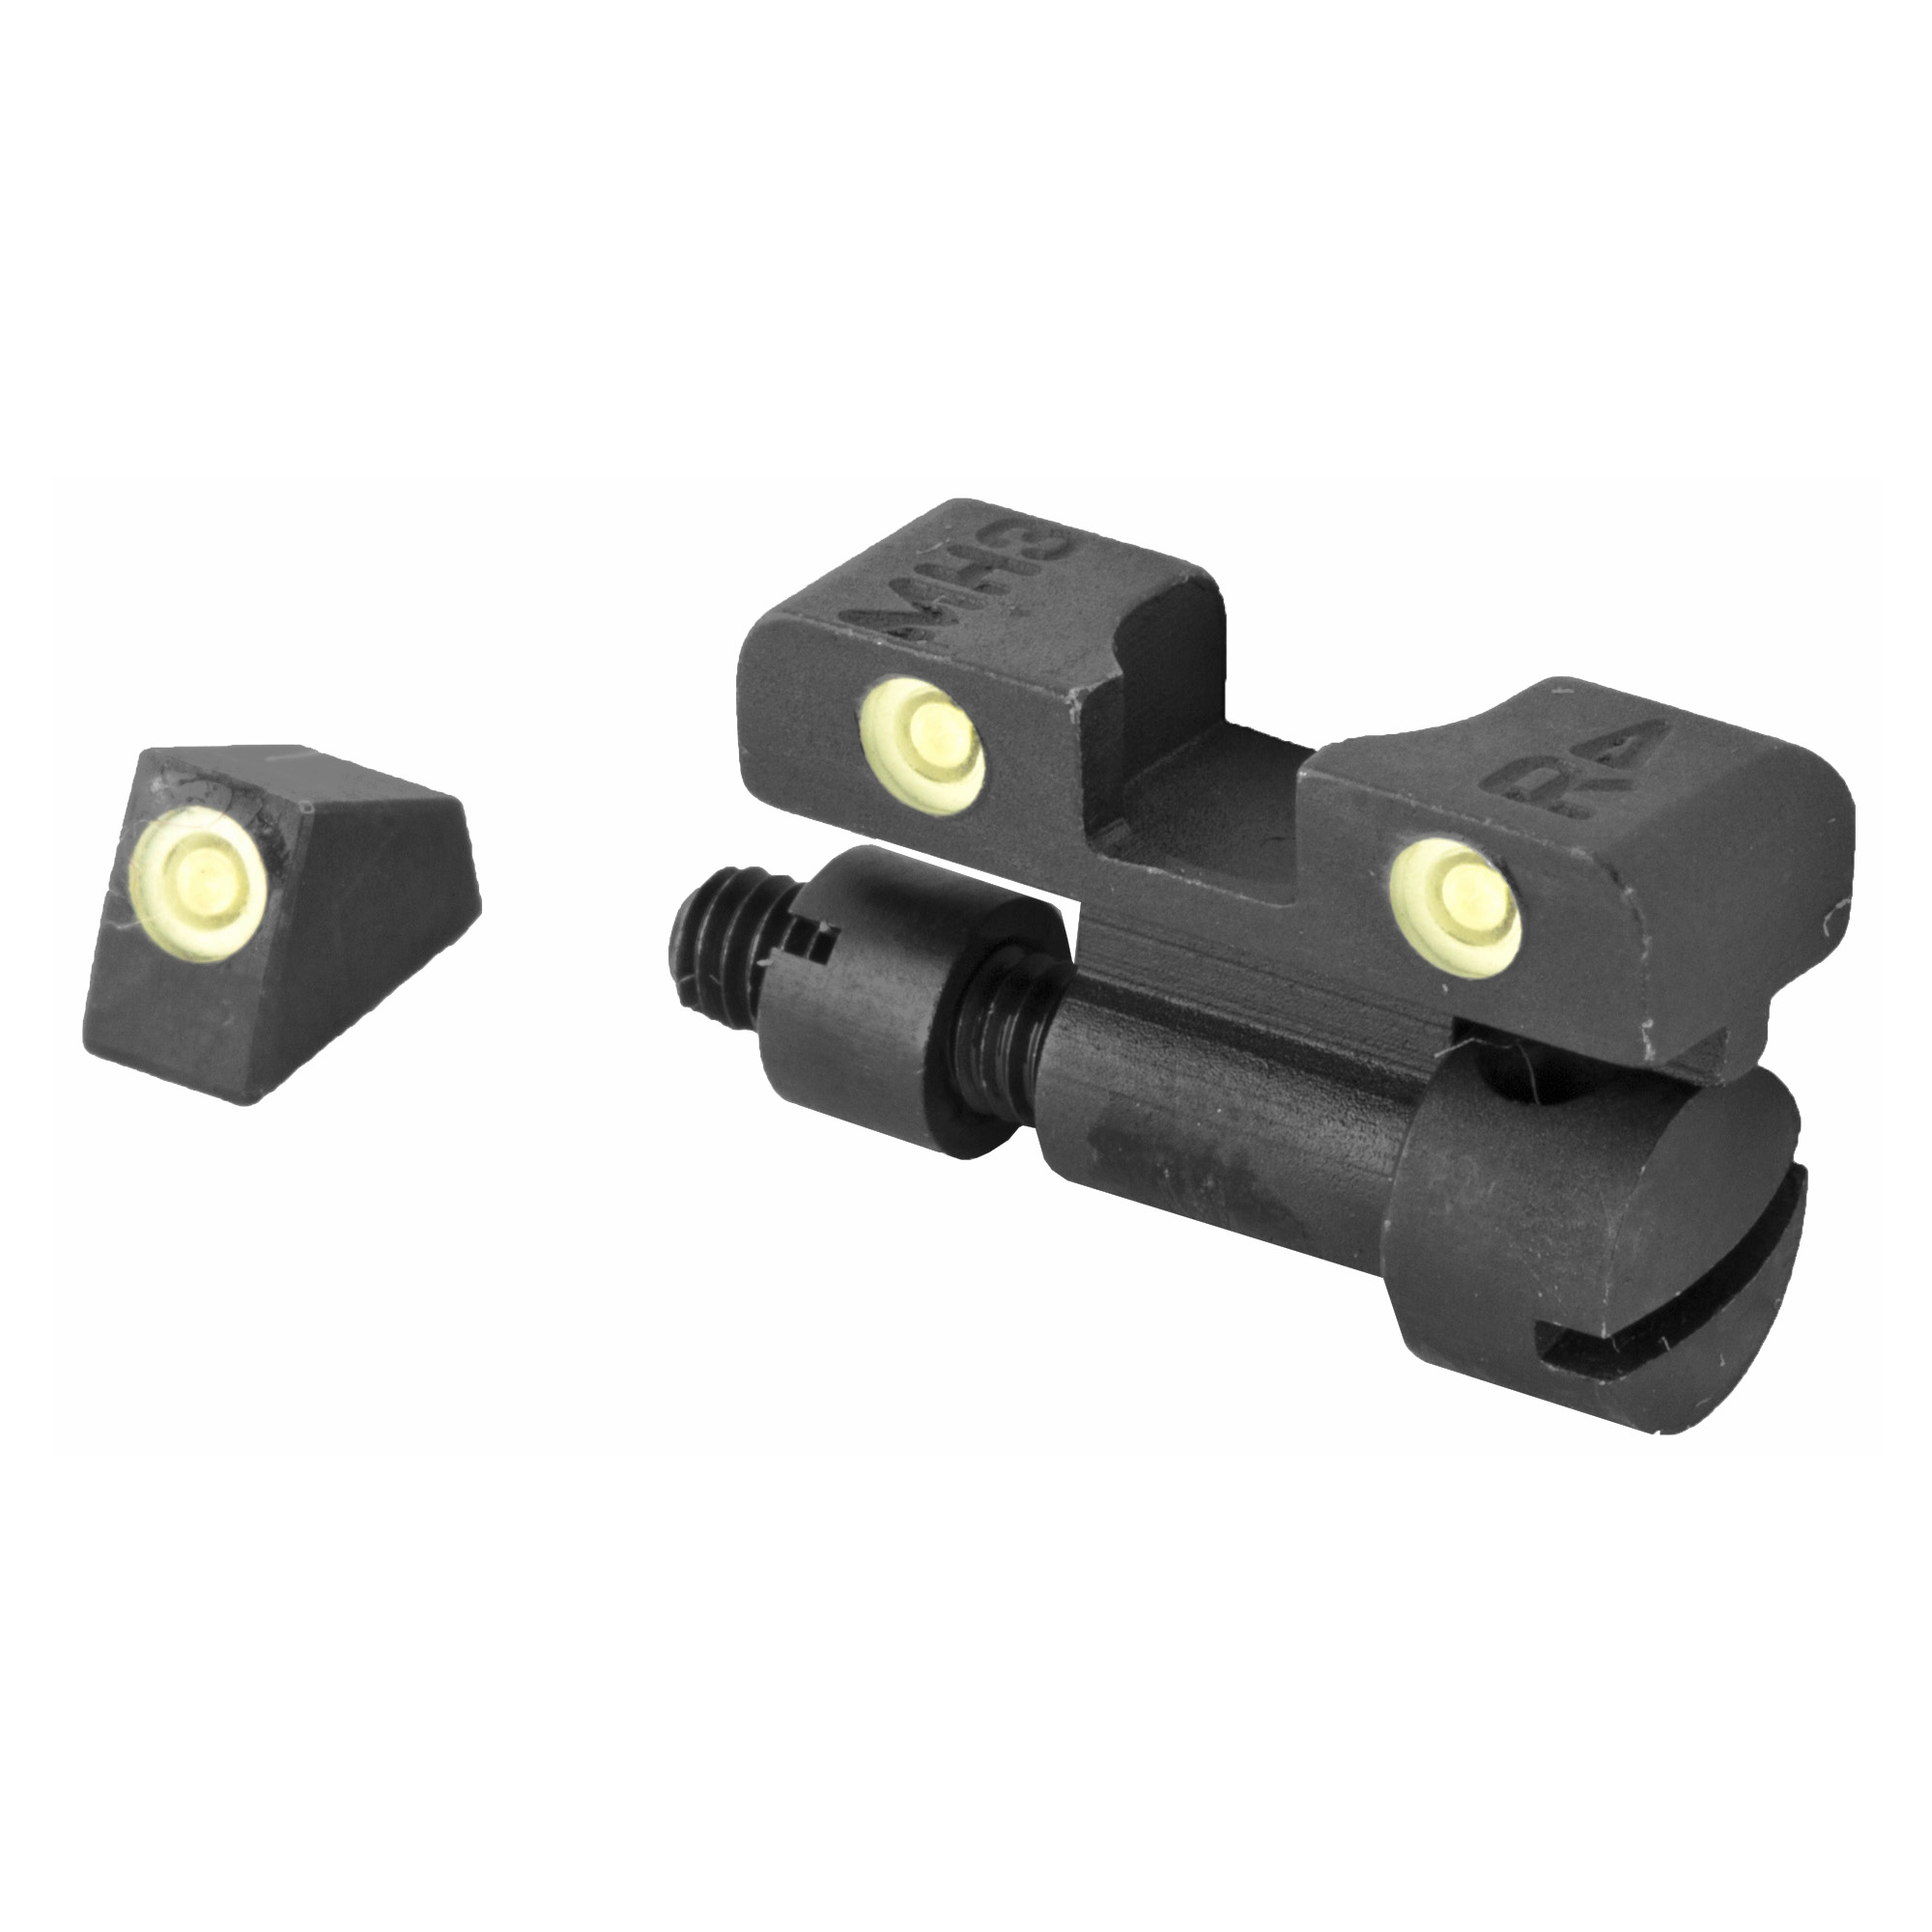 Mako Meprolight Tru-Dot S&W K/L/N Frame Revolver Night Sights Adjustable ML22770